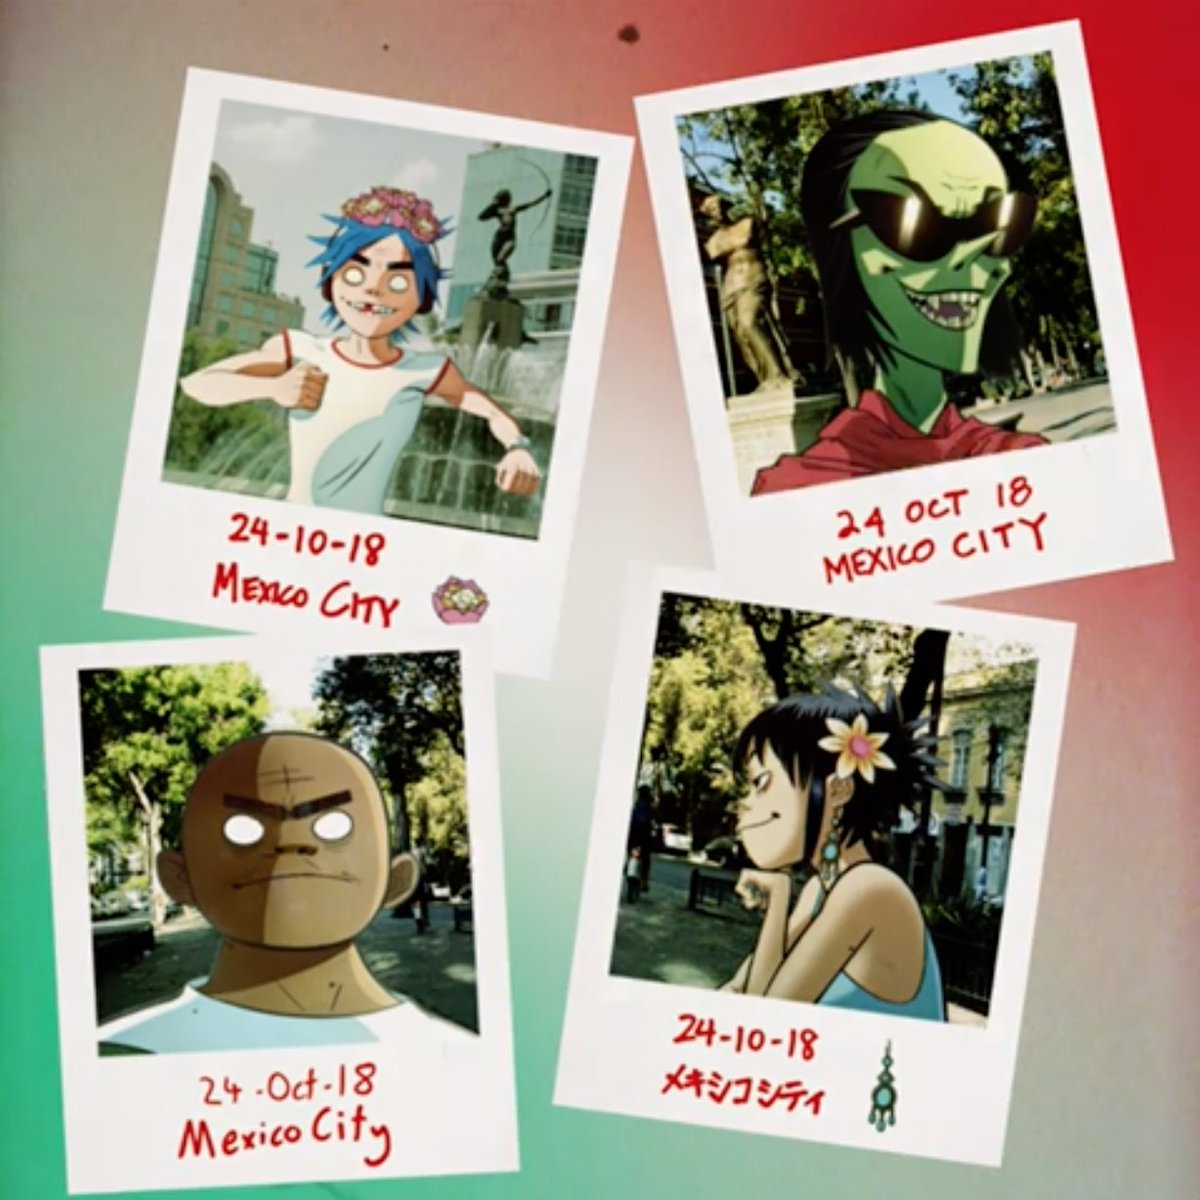 "gorillaz on Twitter: ""#TheNowNow Tour is coming to Mexico on October 24 🇲🇽 📍Palacio de los Deportes @ElPalacioMx 🎫 Pre-sale Aug 29/30 🎫 General sale Aug 31 https://t.co/OmQwxrfBbr… https://t.co/JOxIYNpv9B"""